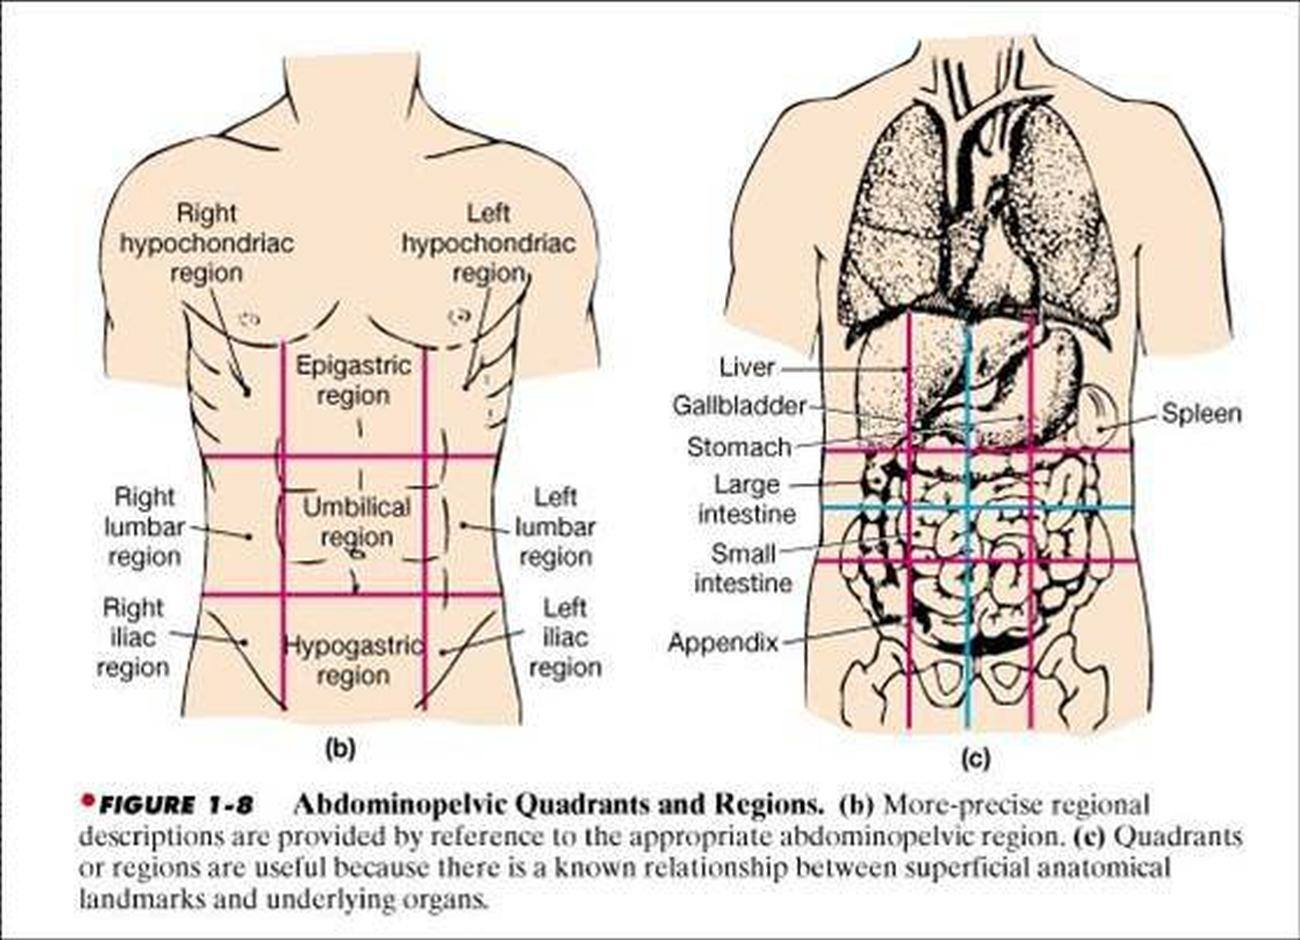 diagram of the four quadrants modine pdp wiring pictures abdominopelvic cavity